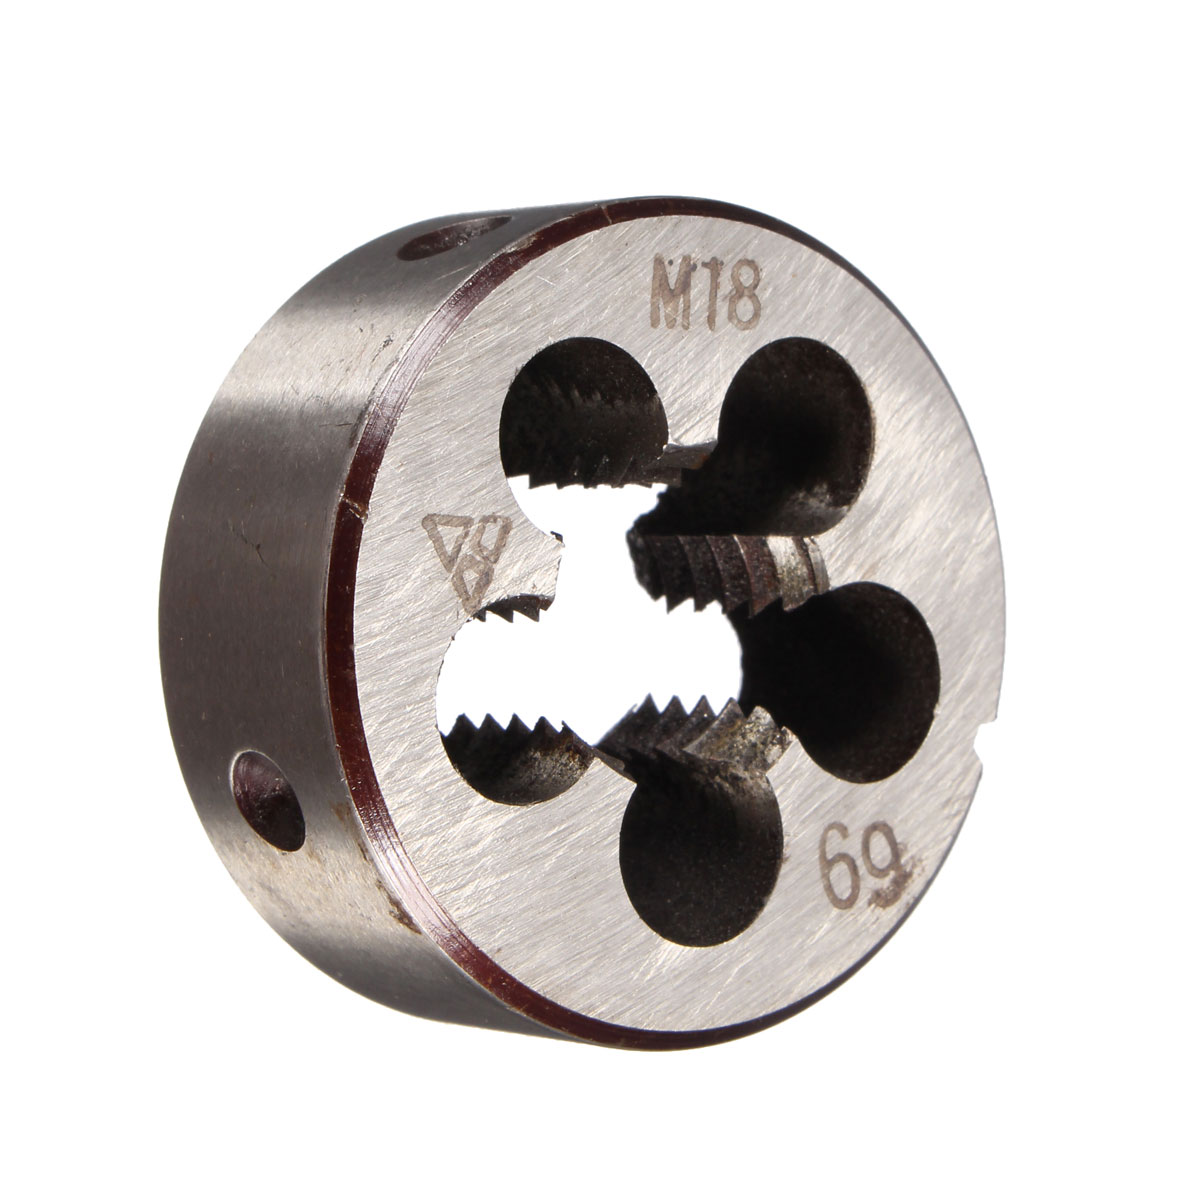 M3-M20 Metric Right Hand Thread Alloy Steel Die Wrench